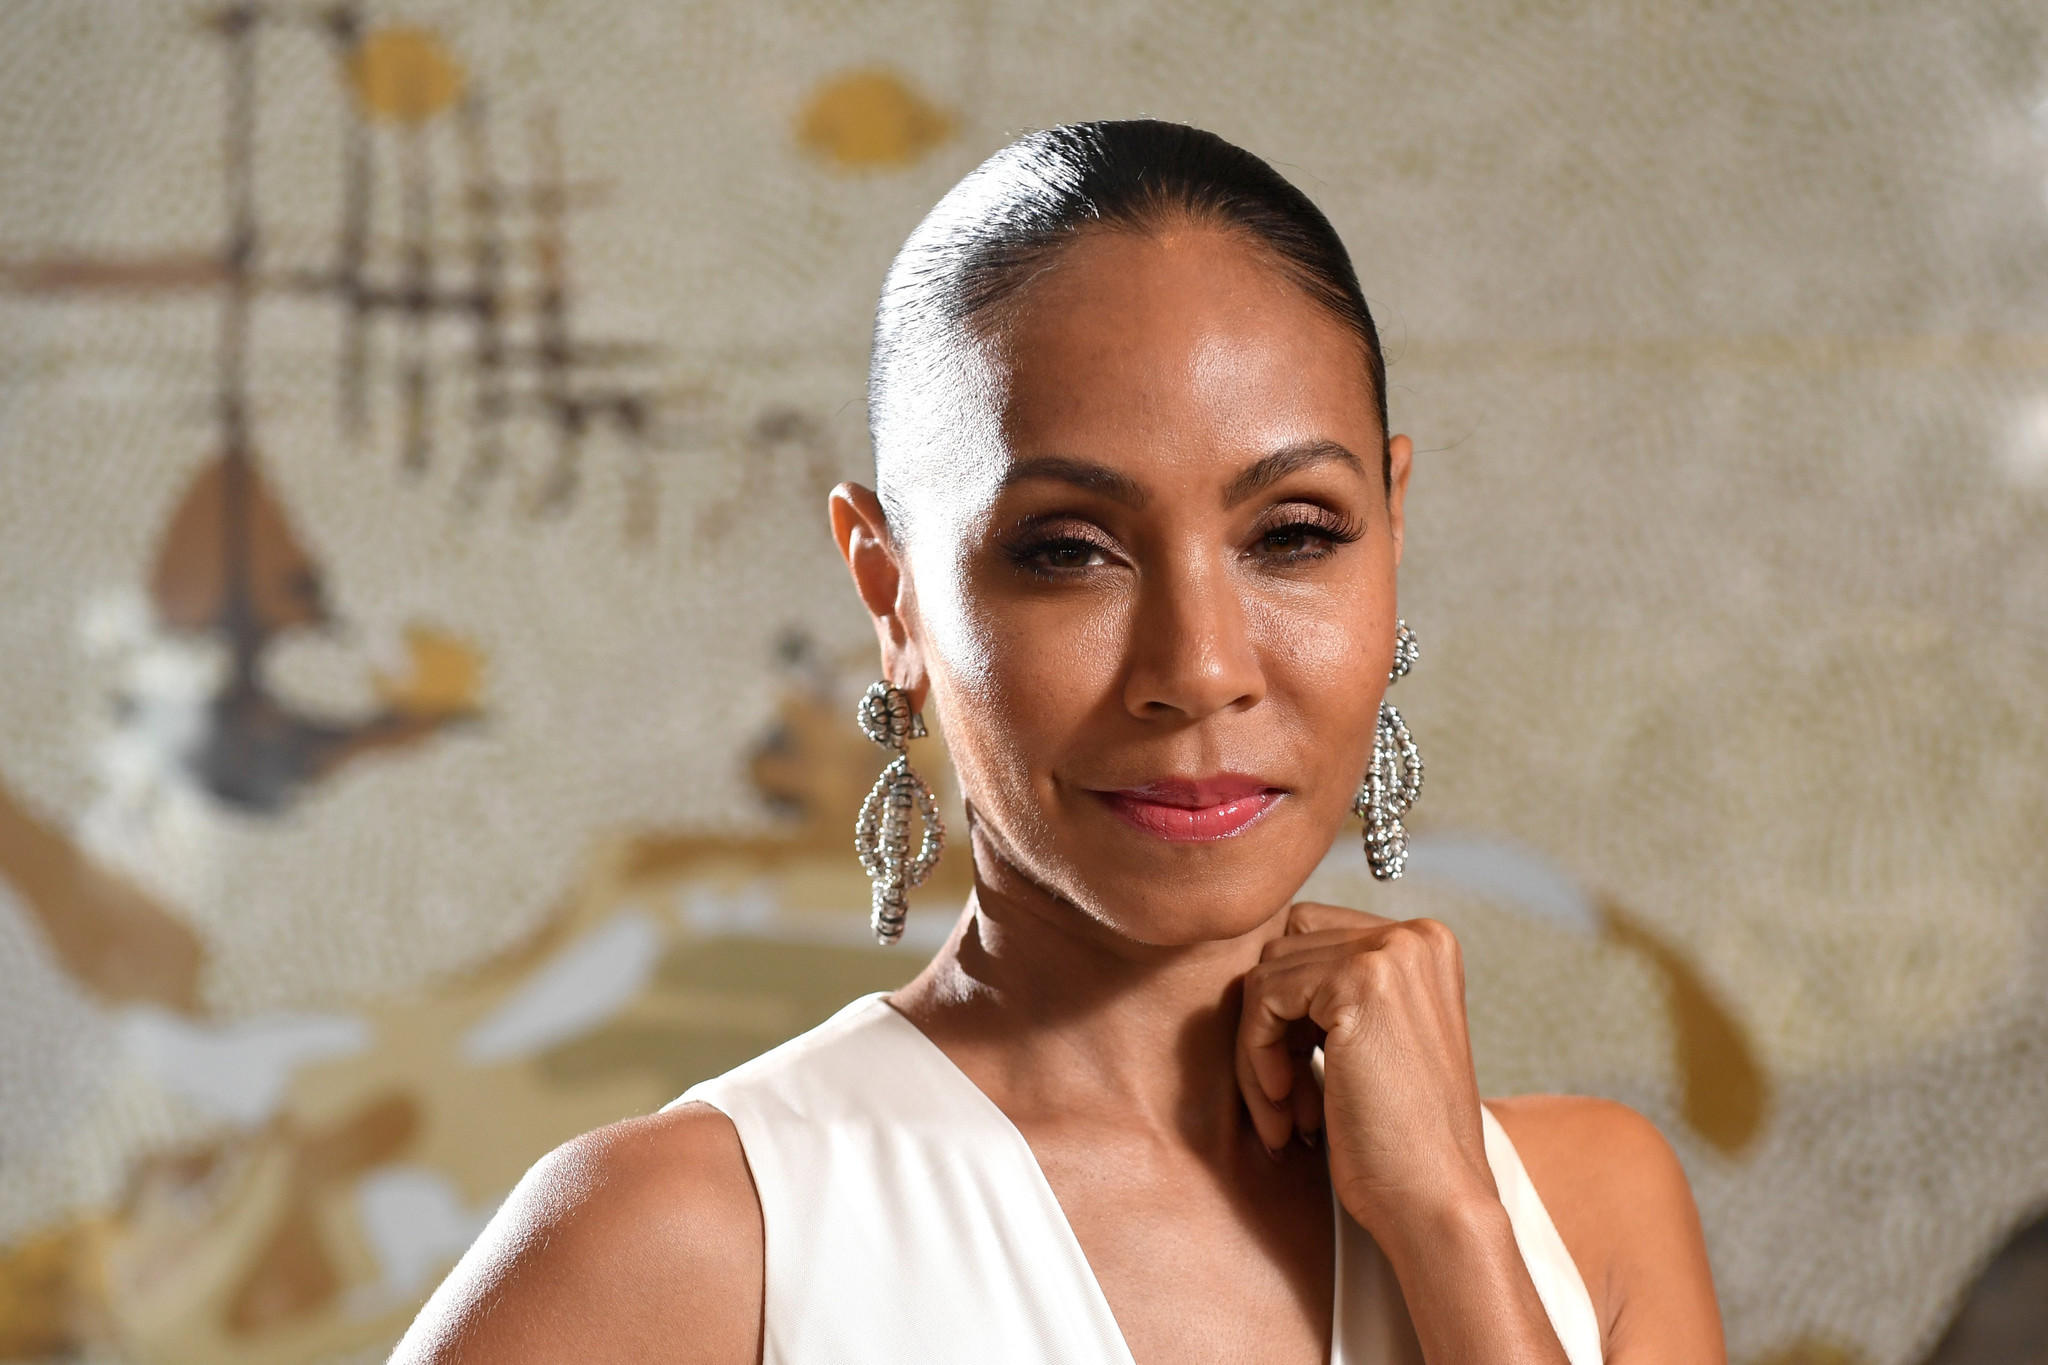 Jada Pinkett Smith Responds to Leah Remini: 'I Am Not a Scientologist'